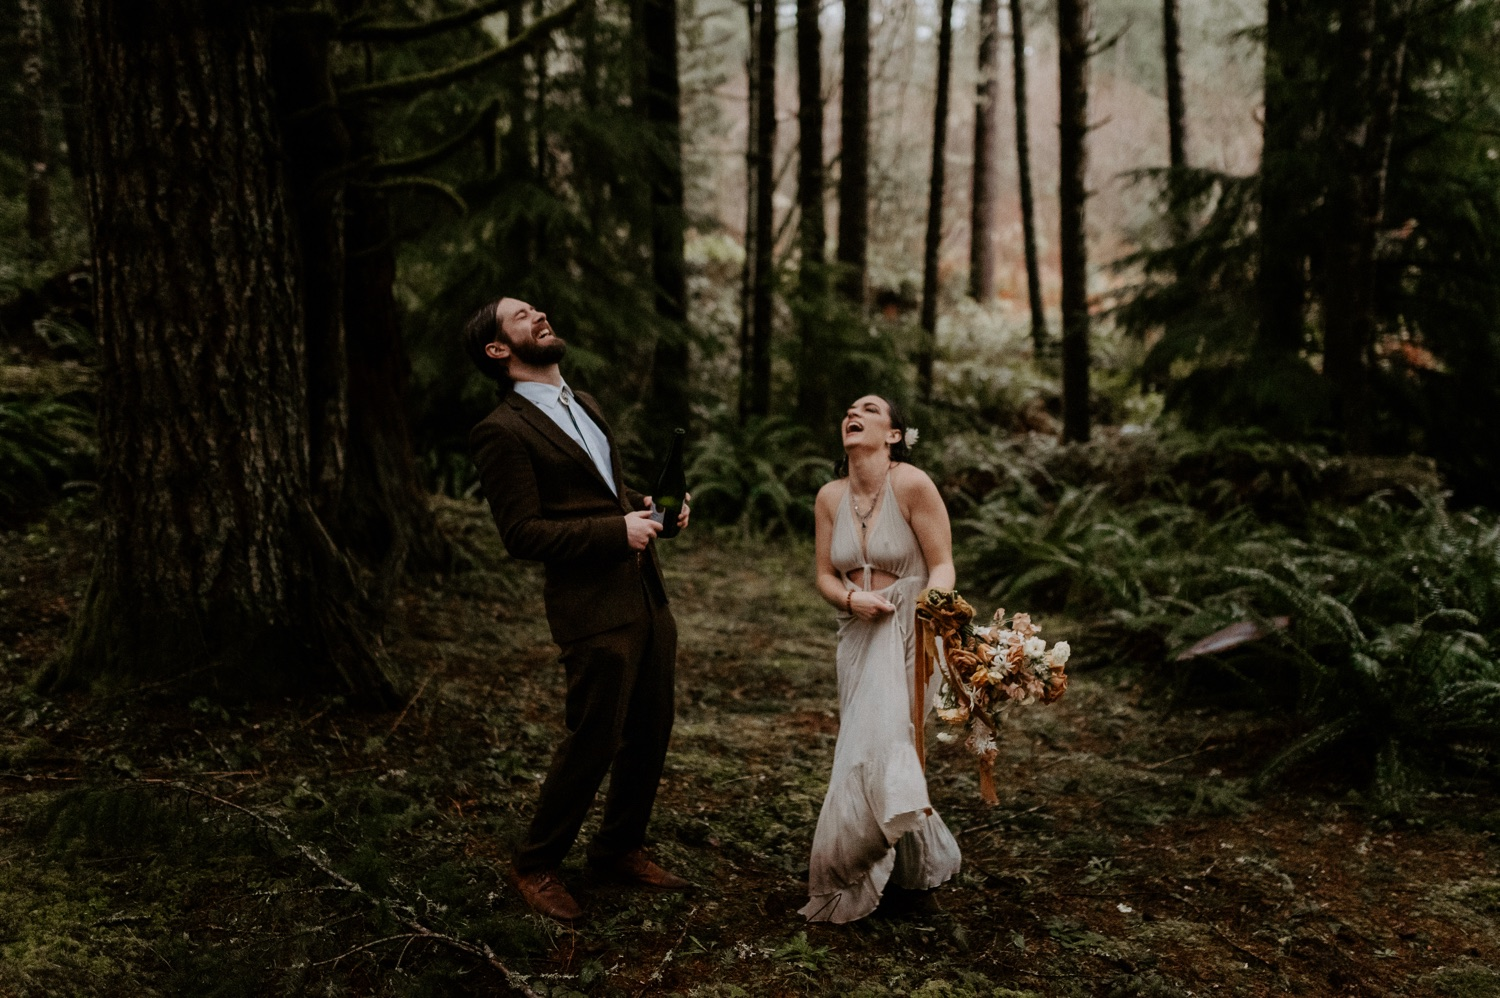 The Woodlands House Sandy Oregon Elopement Portland Elopement Photographer PNW Adventurous Elopement Anais Possamai Photography 047